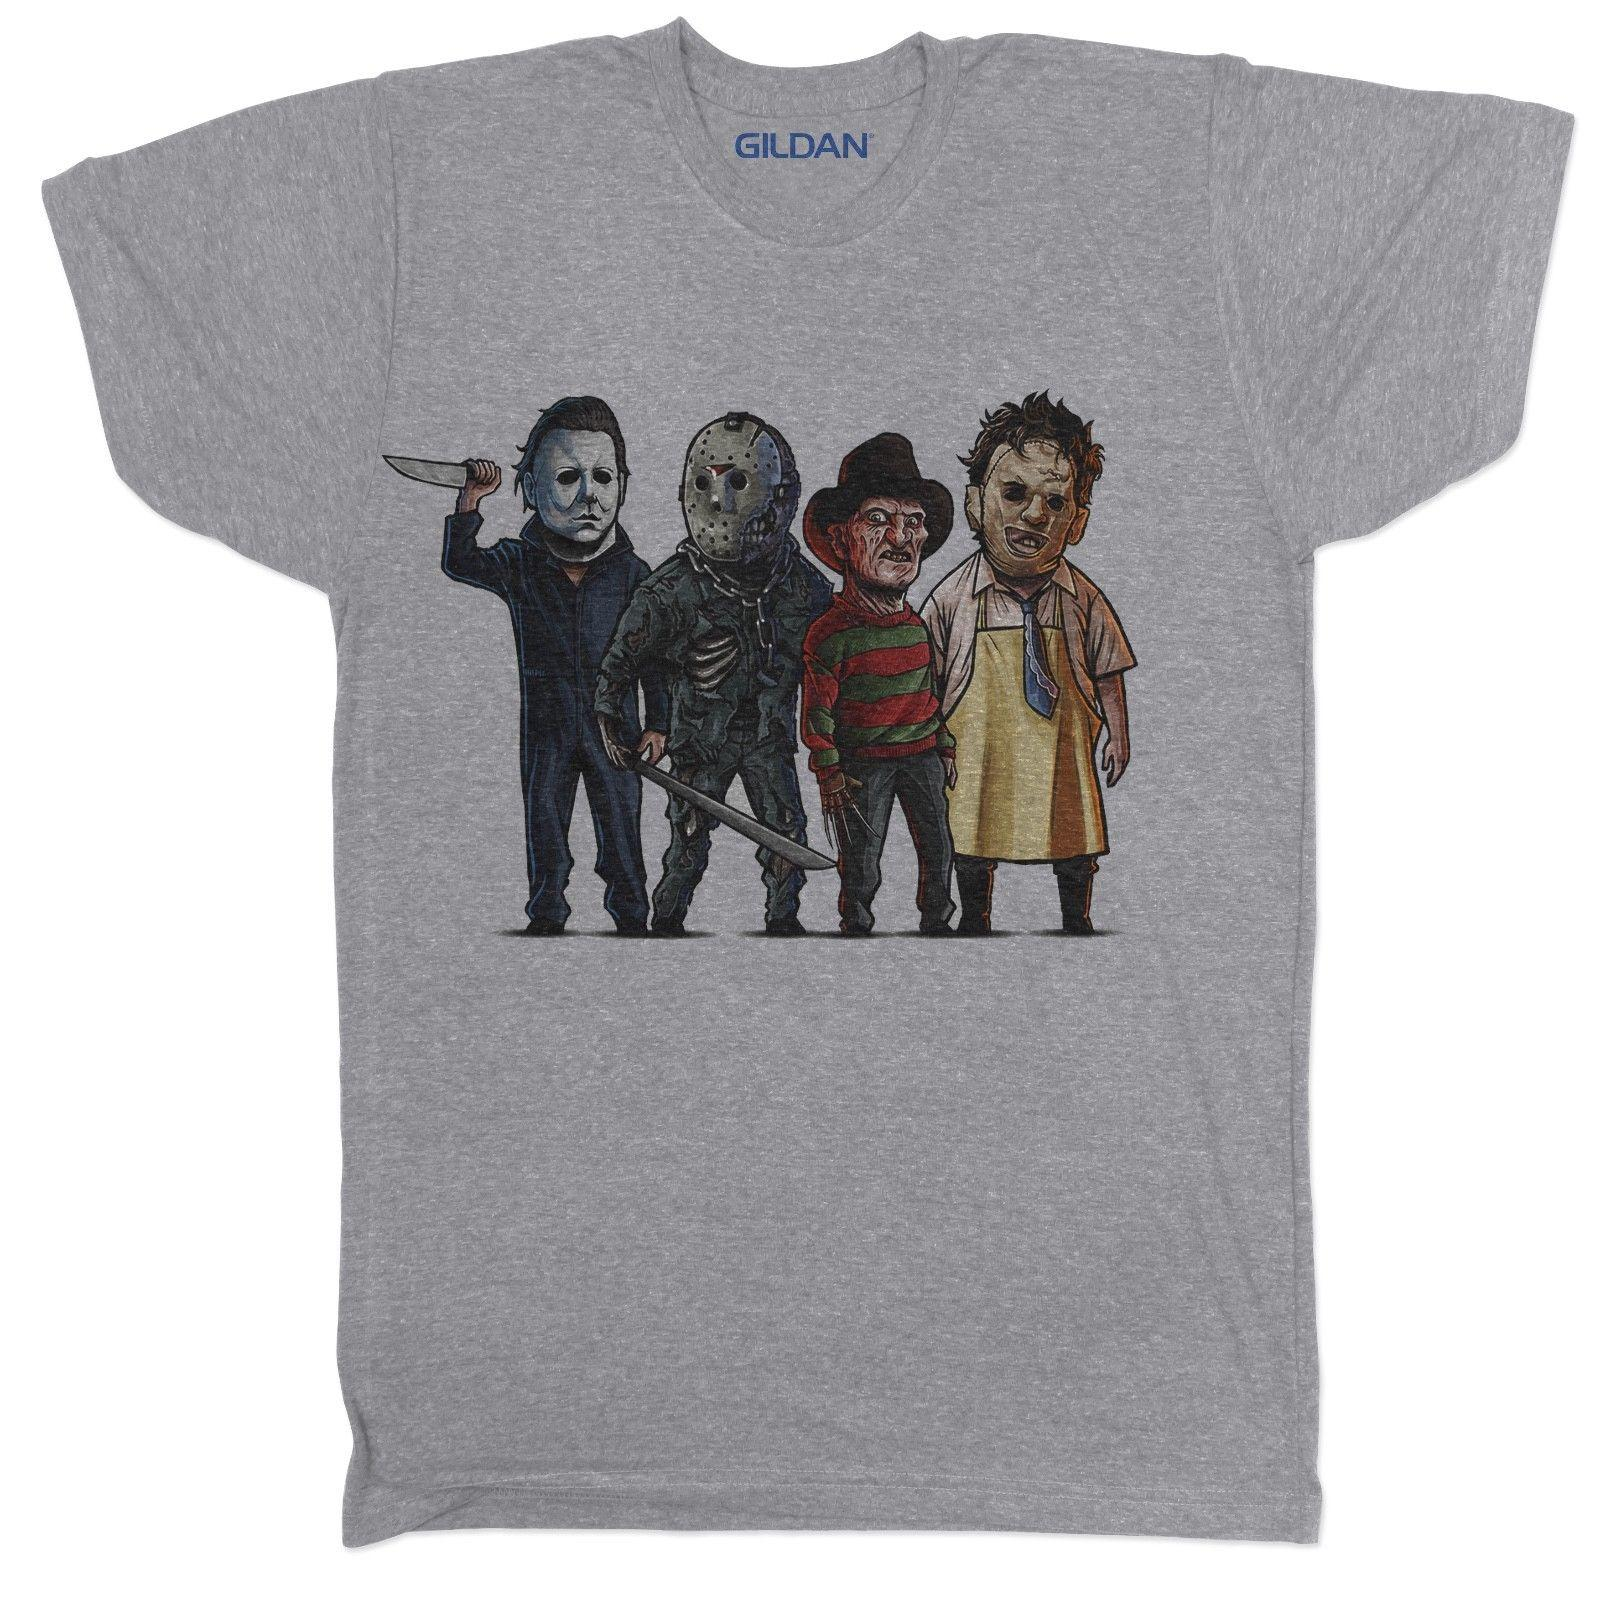 8237818c4a1e USUAL SUSPECTS HORROR MOVIE FILM LEATHERFACE HALLOWEEN MYERS CARTOON T  SHIRT Funny Unisex Tee Teet Shirts Tee Shirts For Sale From Tshirt press